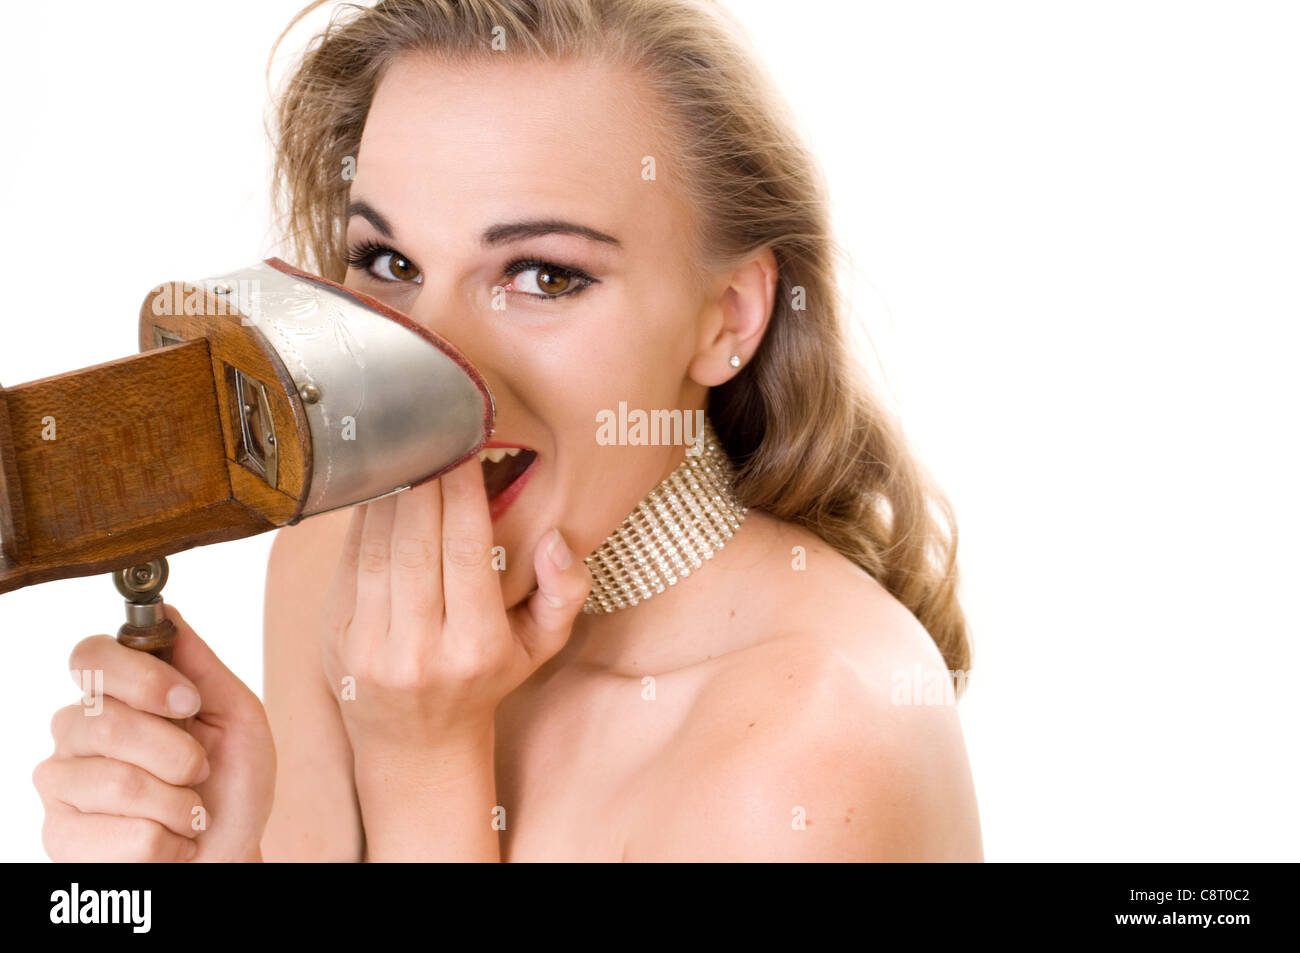 Beautiful Model Cracking Up at a 3D Image Through a 19th Century Stereopticon. Stock Photo